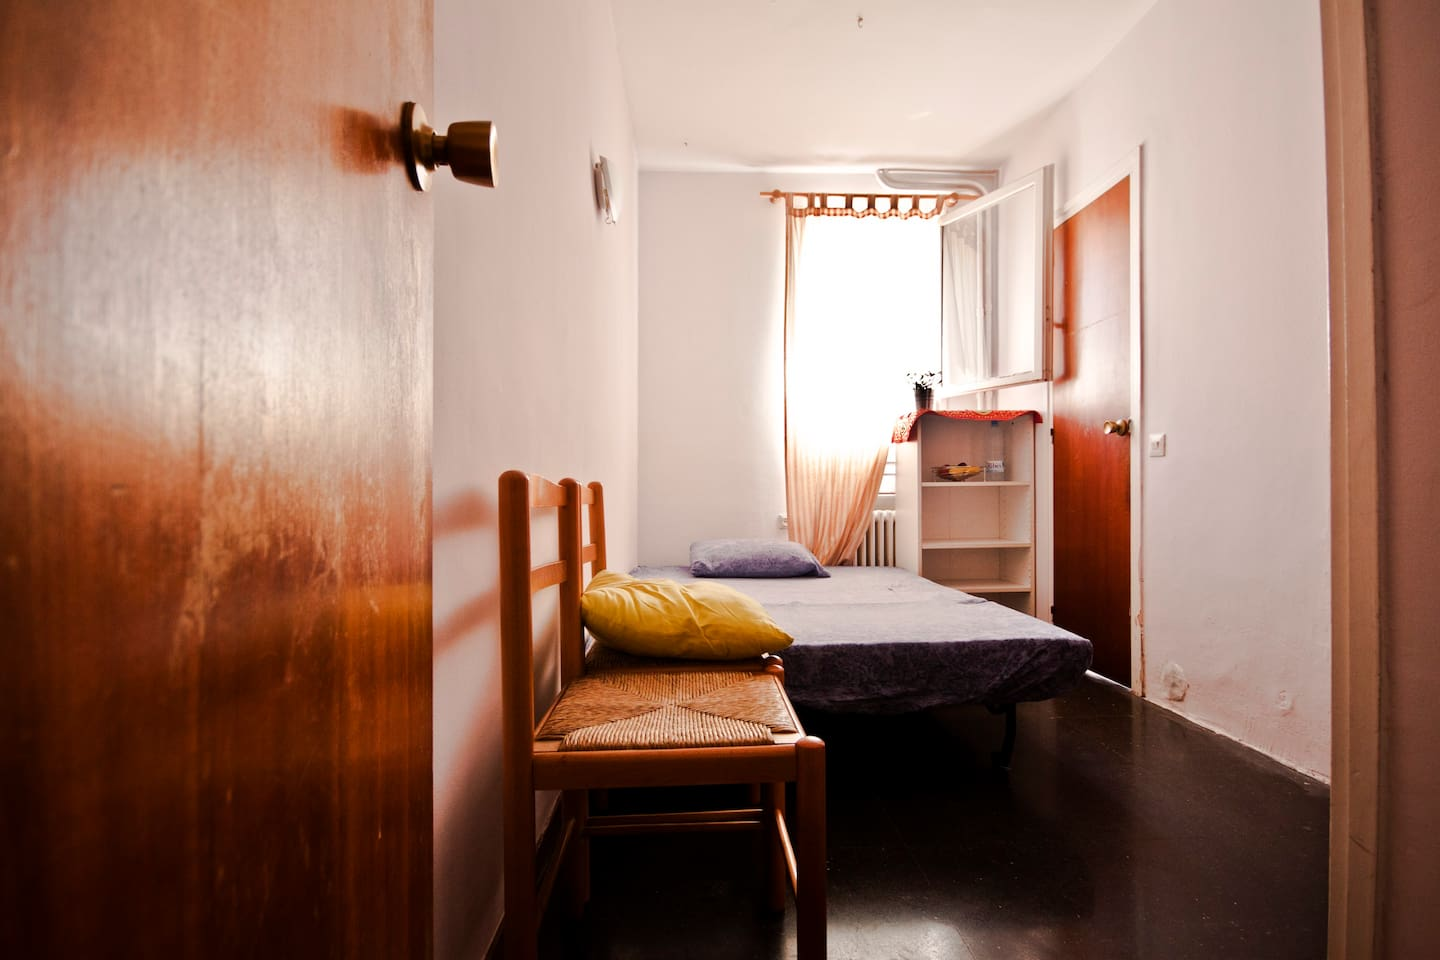 The small bedroom - Ideal for a solo traveller. Can also host a couple but only for a few nights, as the room is quite small.